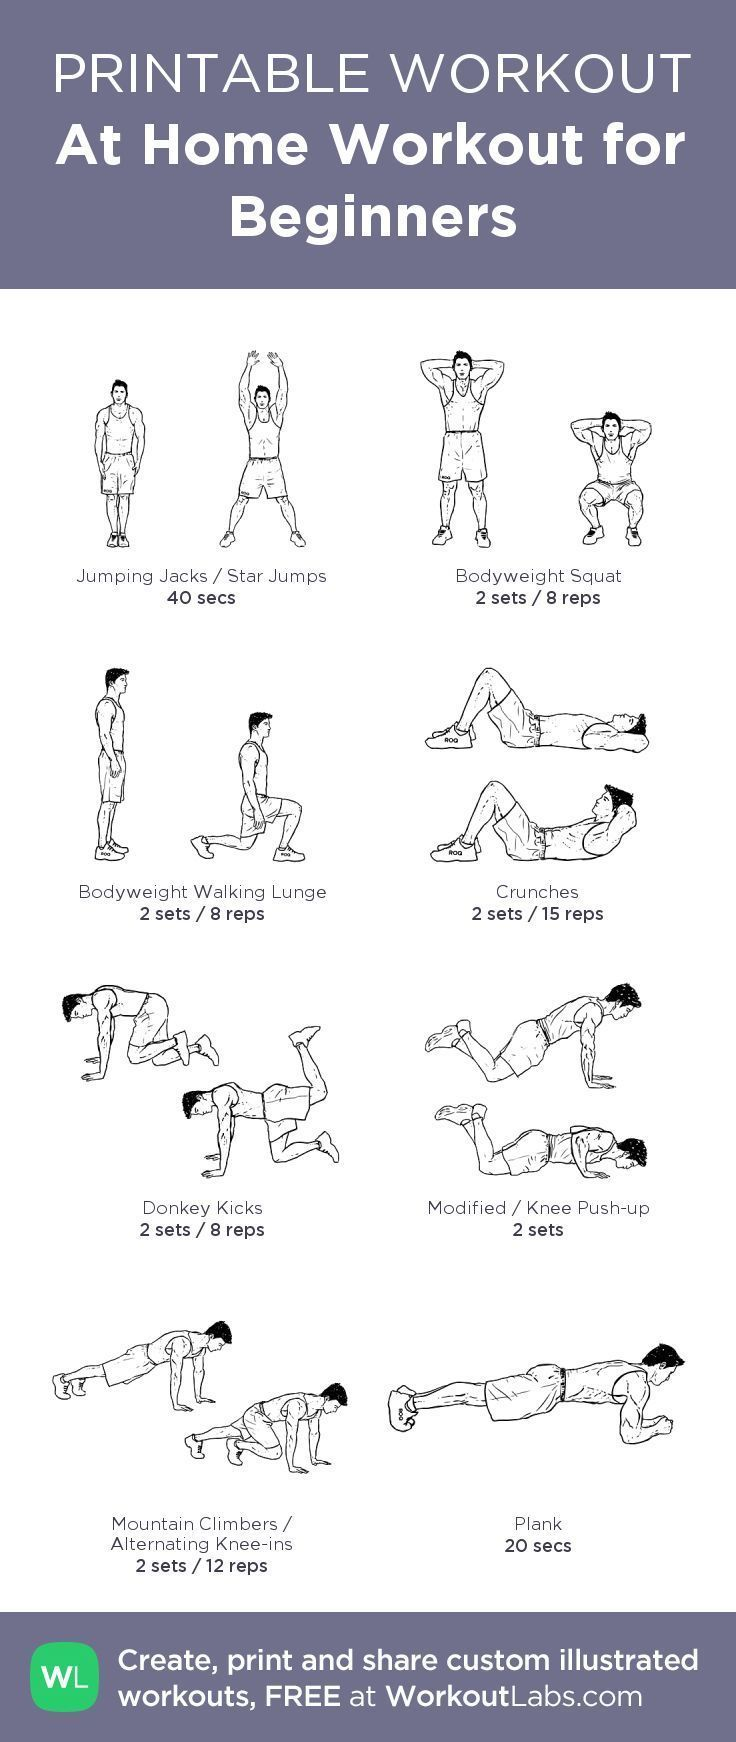 Reduce body fat from 15 to 10 picture 2